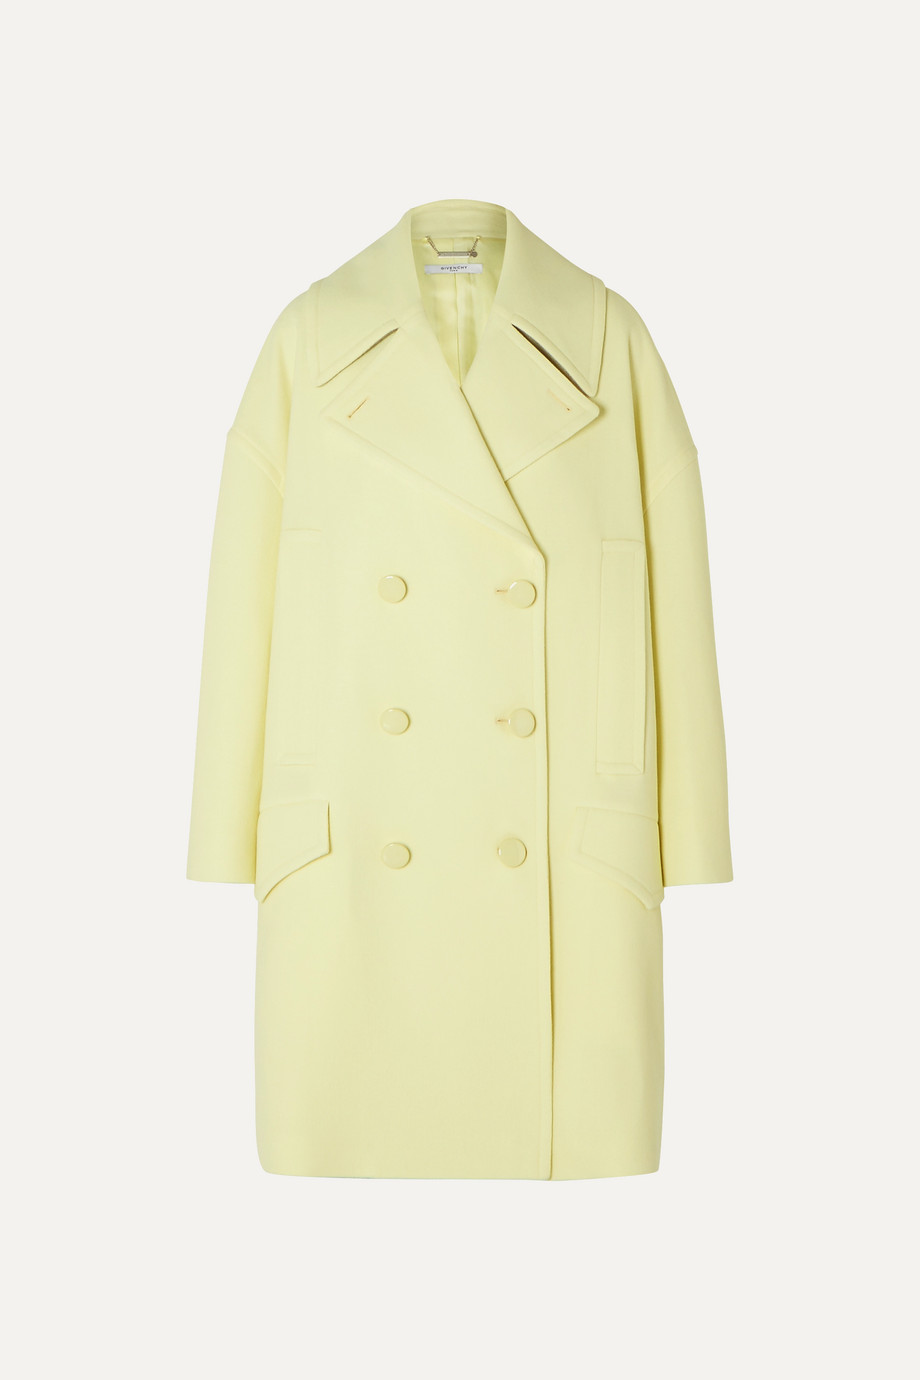 Givenchy Double-breasted wool coat